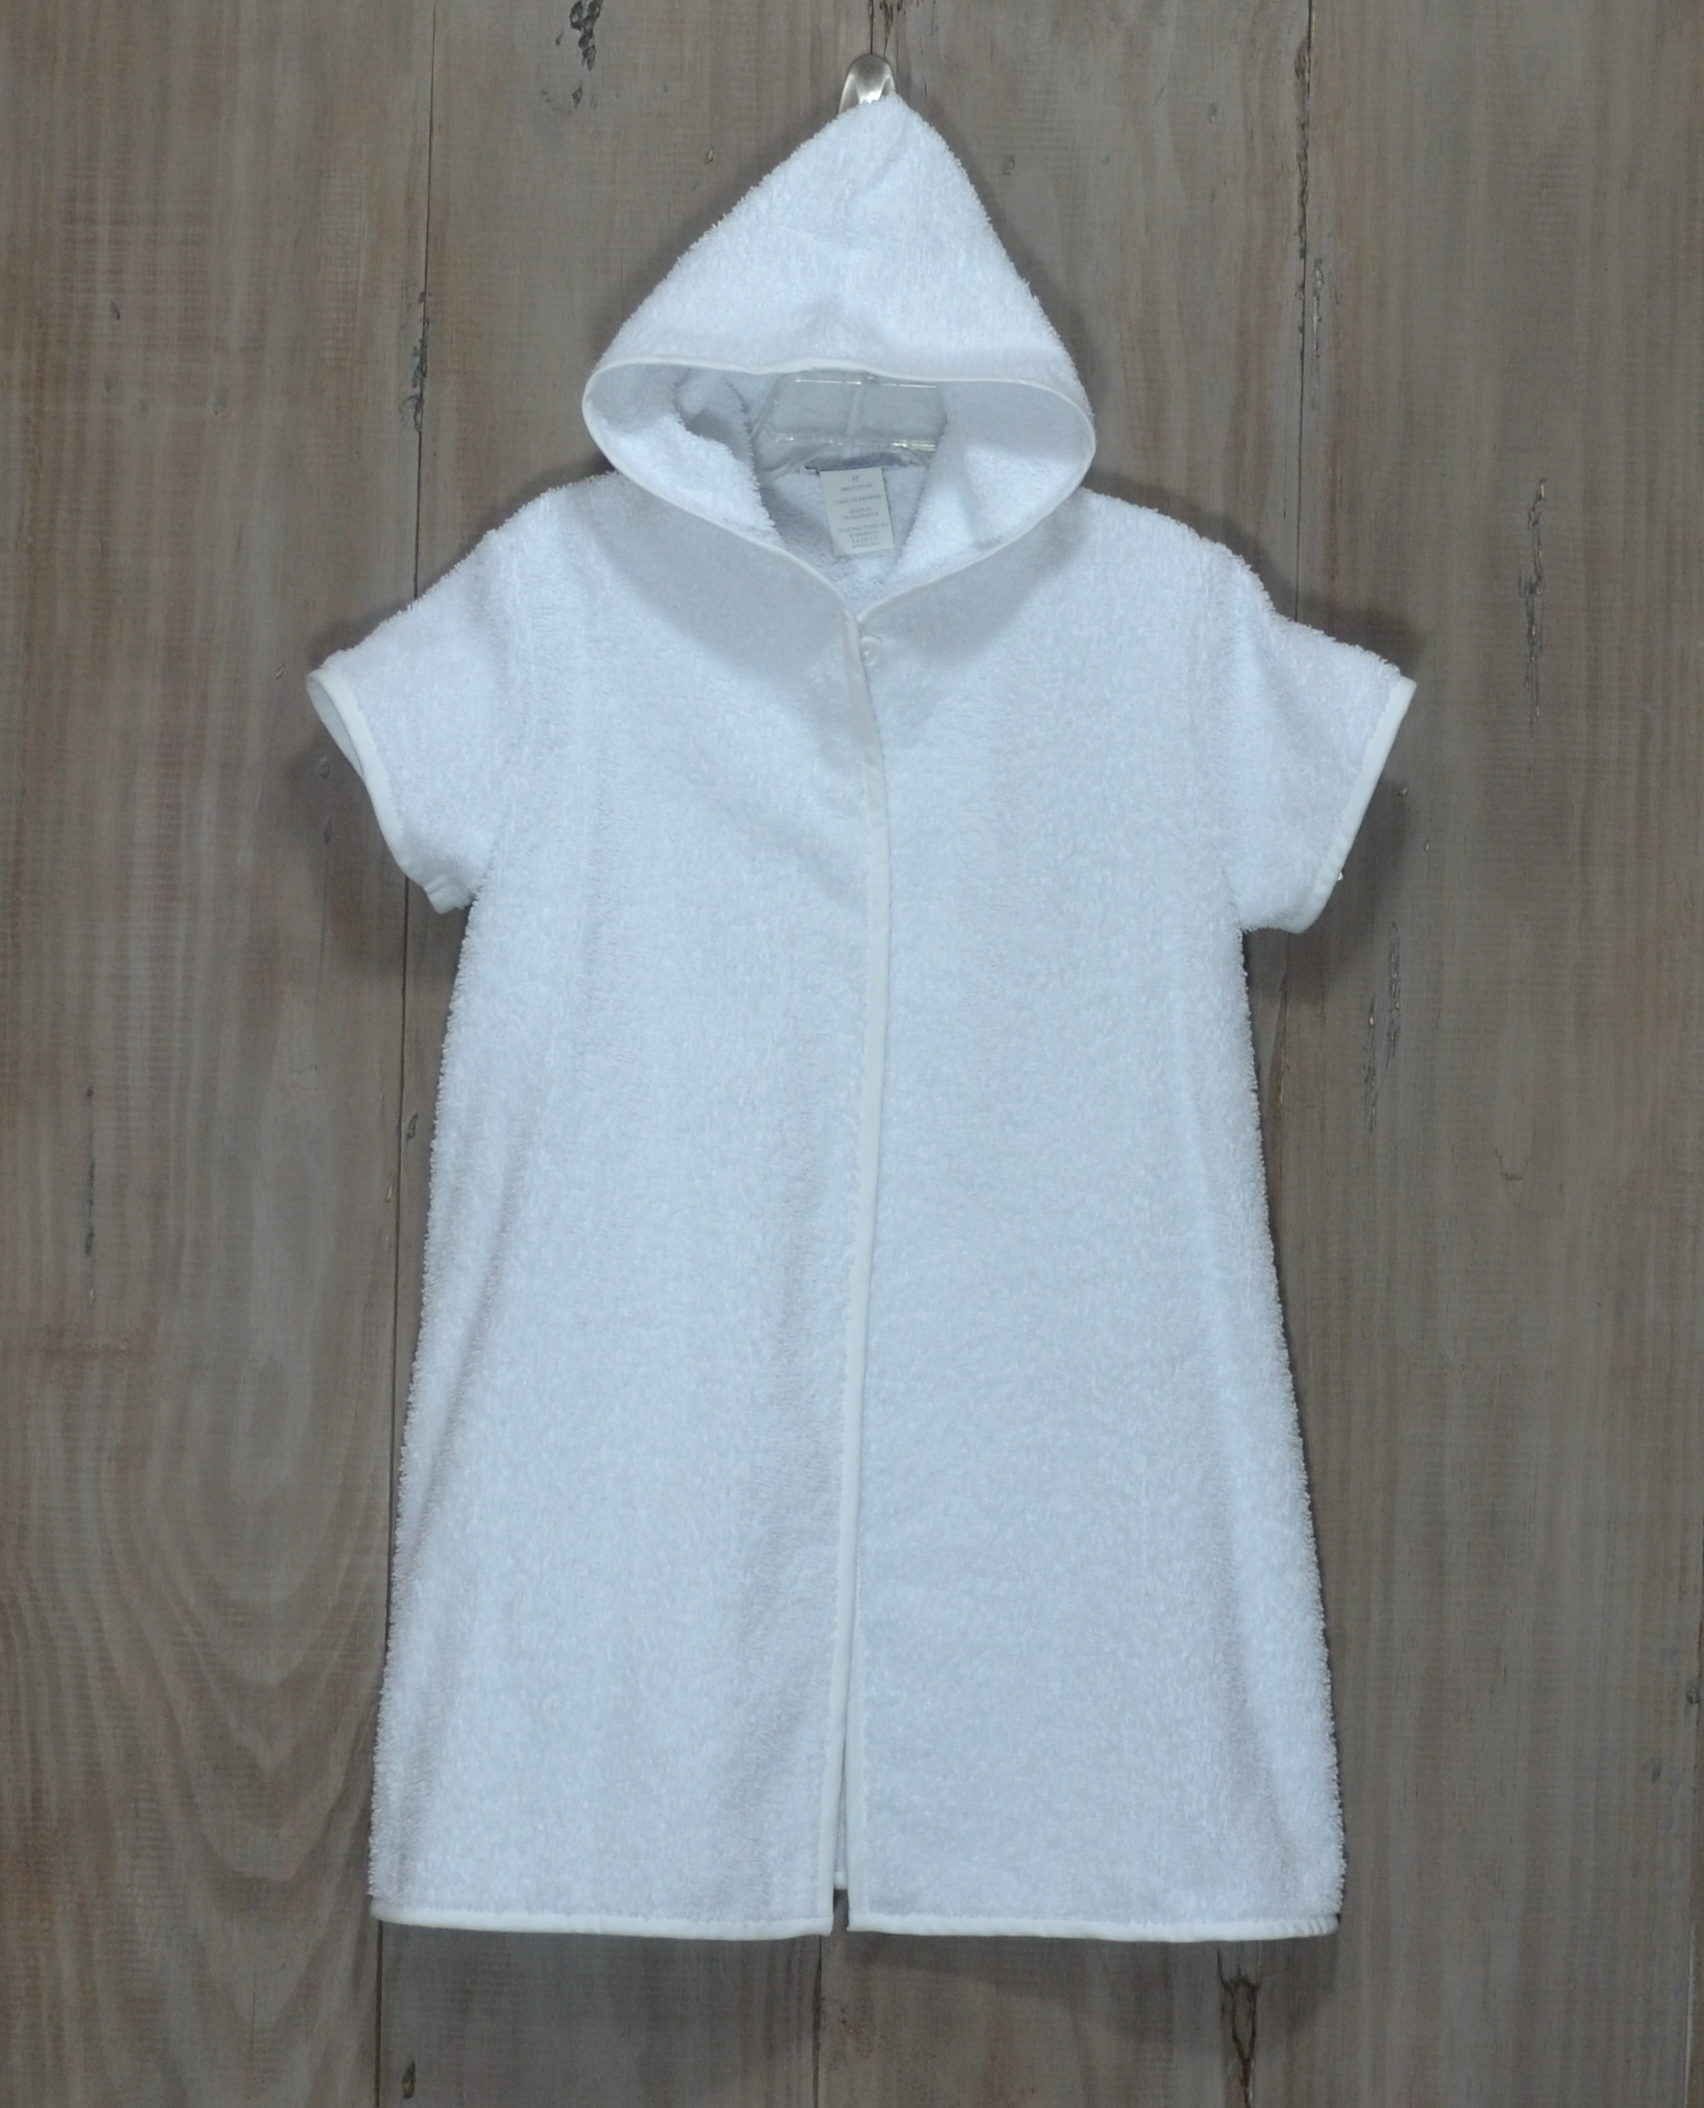 33869c702b White terry cloth swimsuit cover-up that can be for a boy or a girl